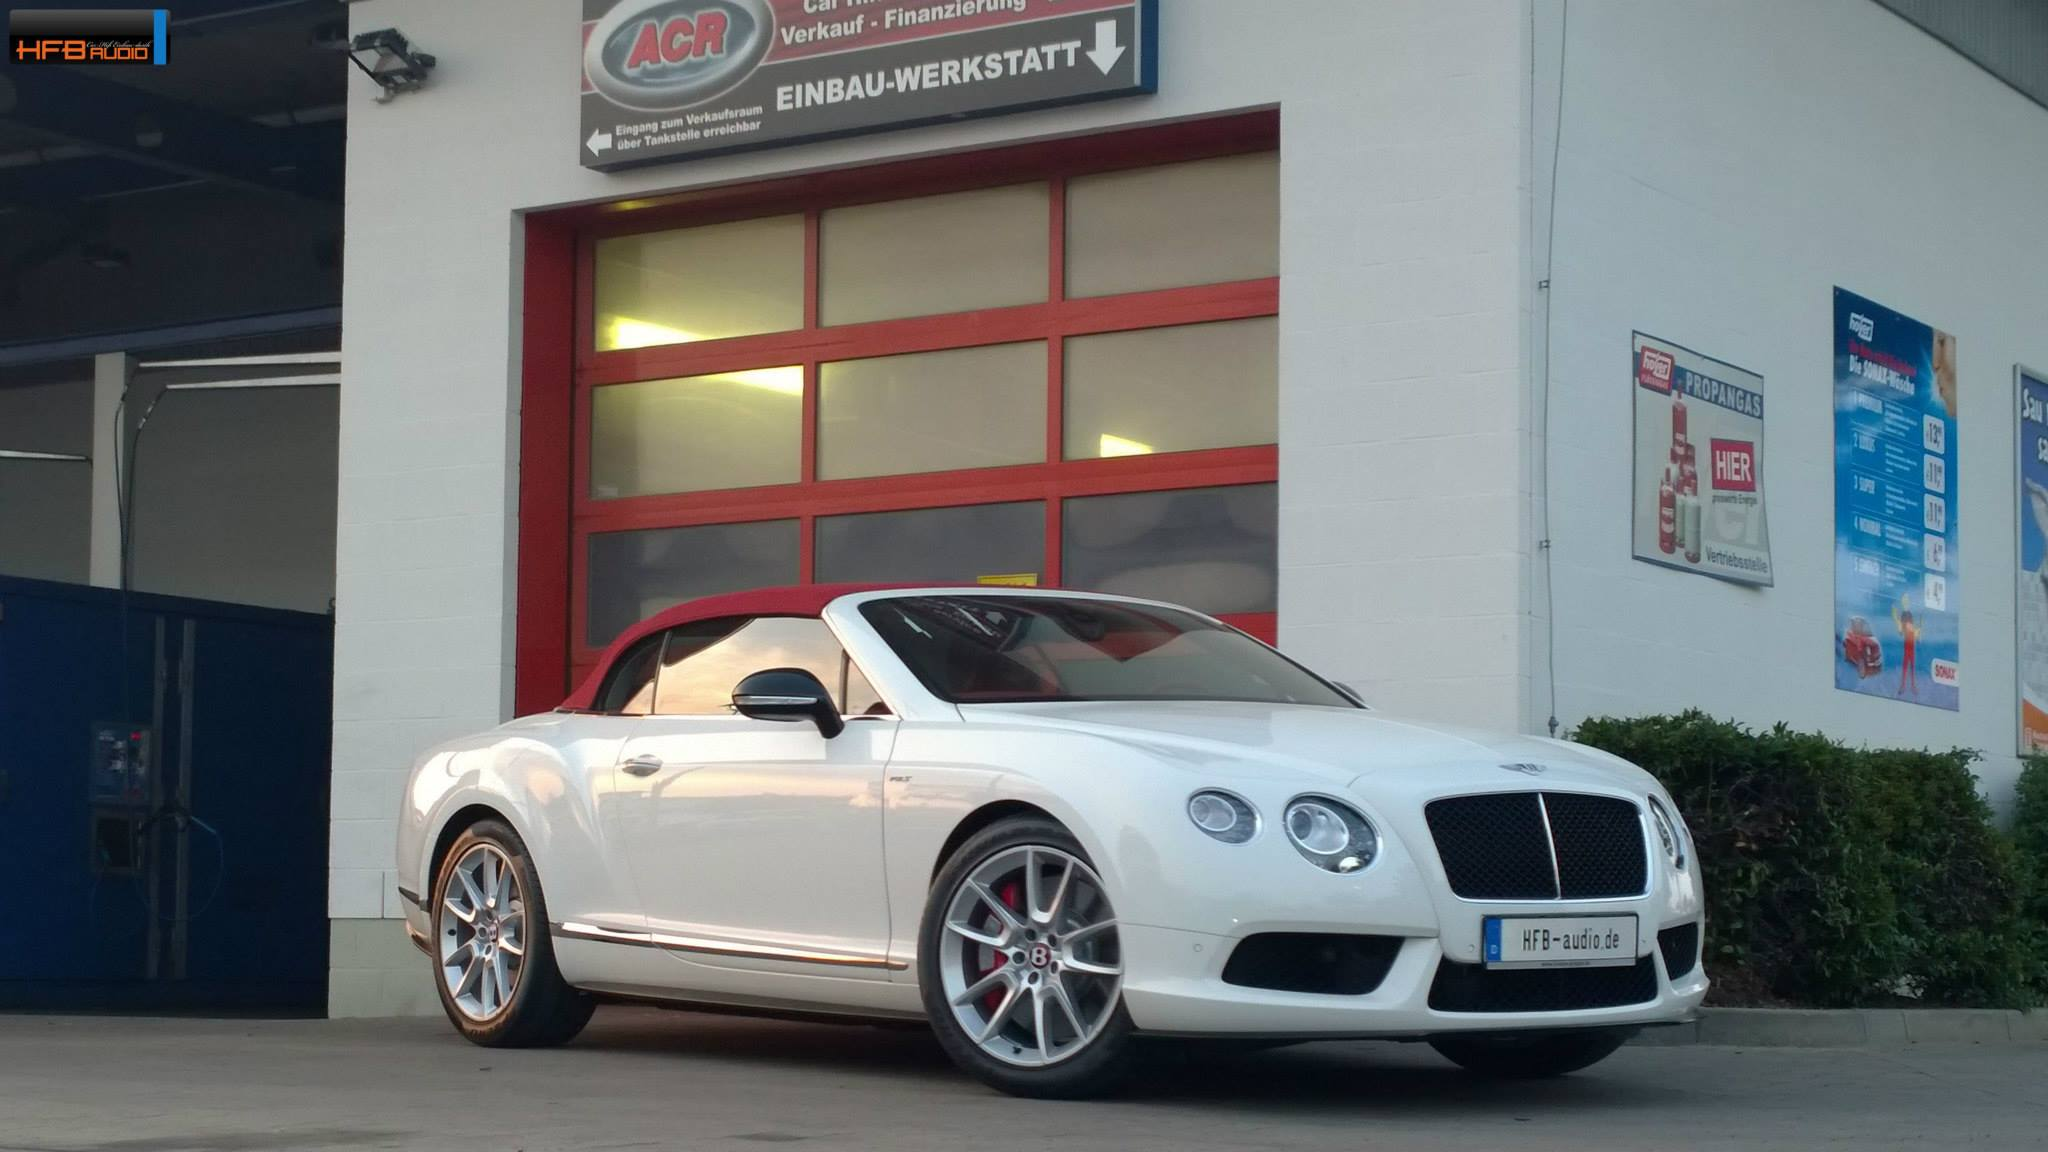 Bentley Continental GTC V8S Soundaufrüstung hfbdio dein Car